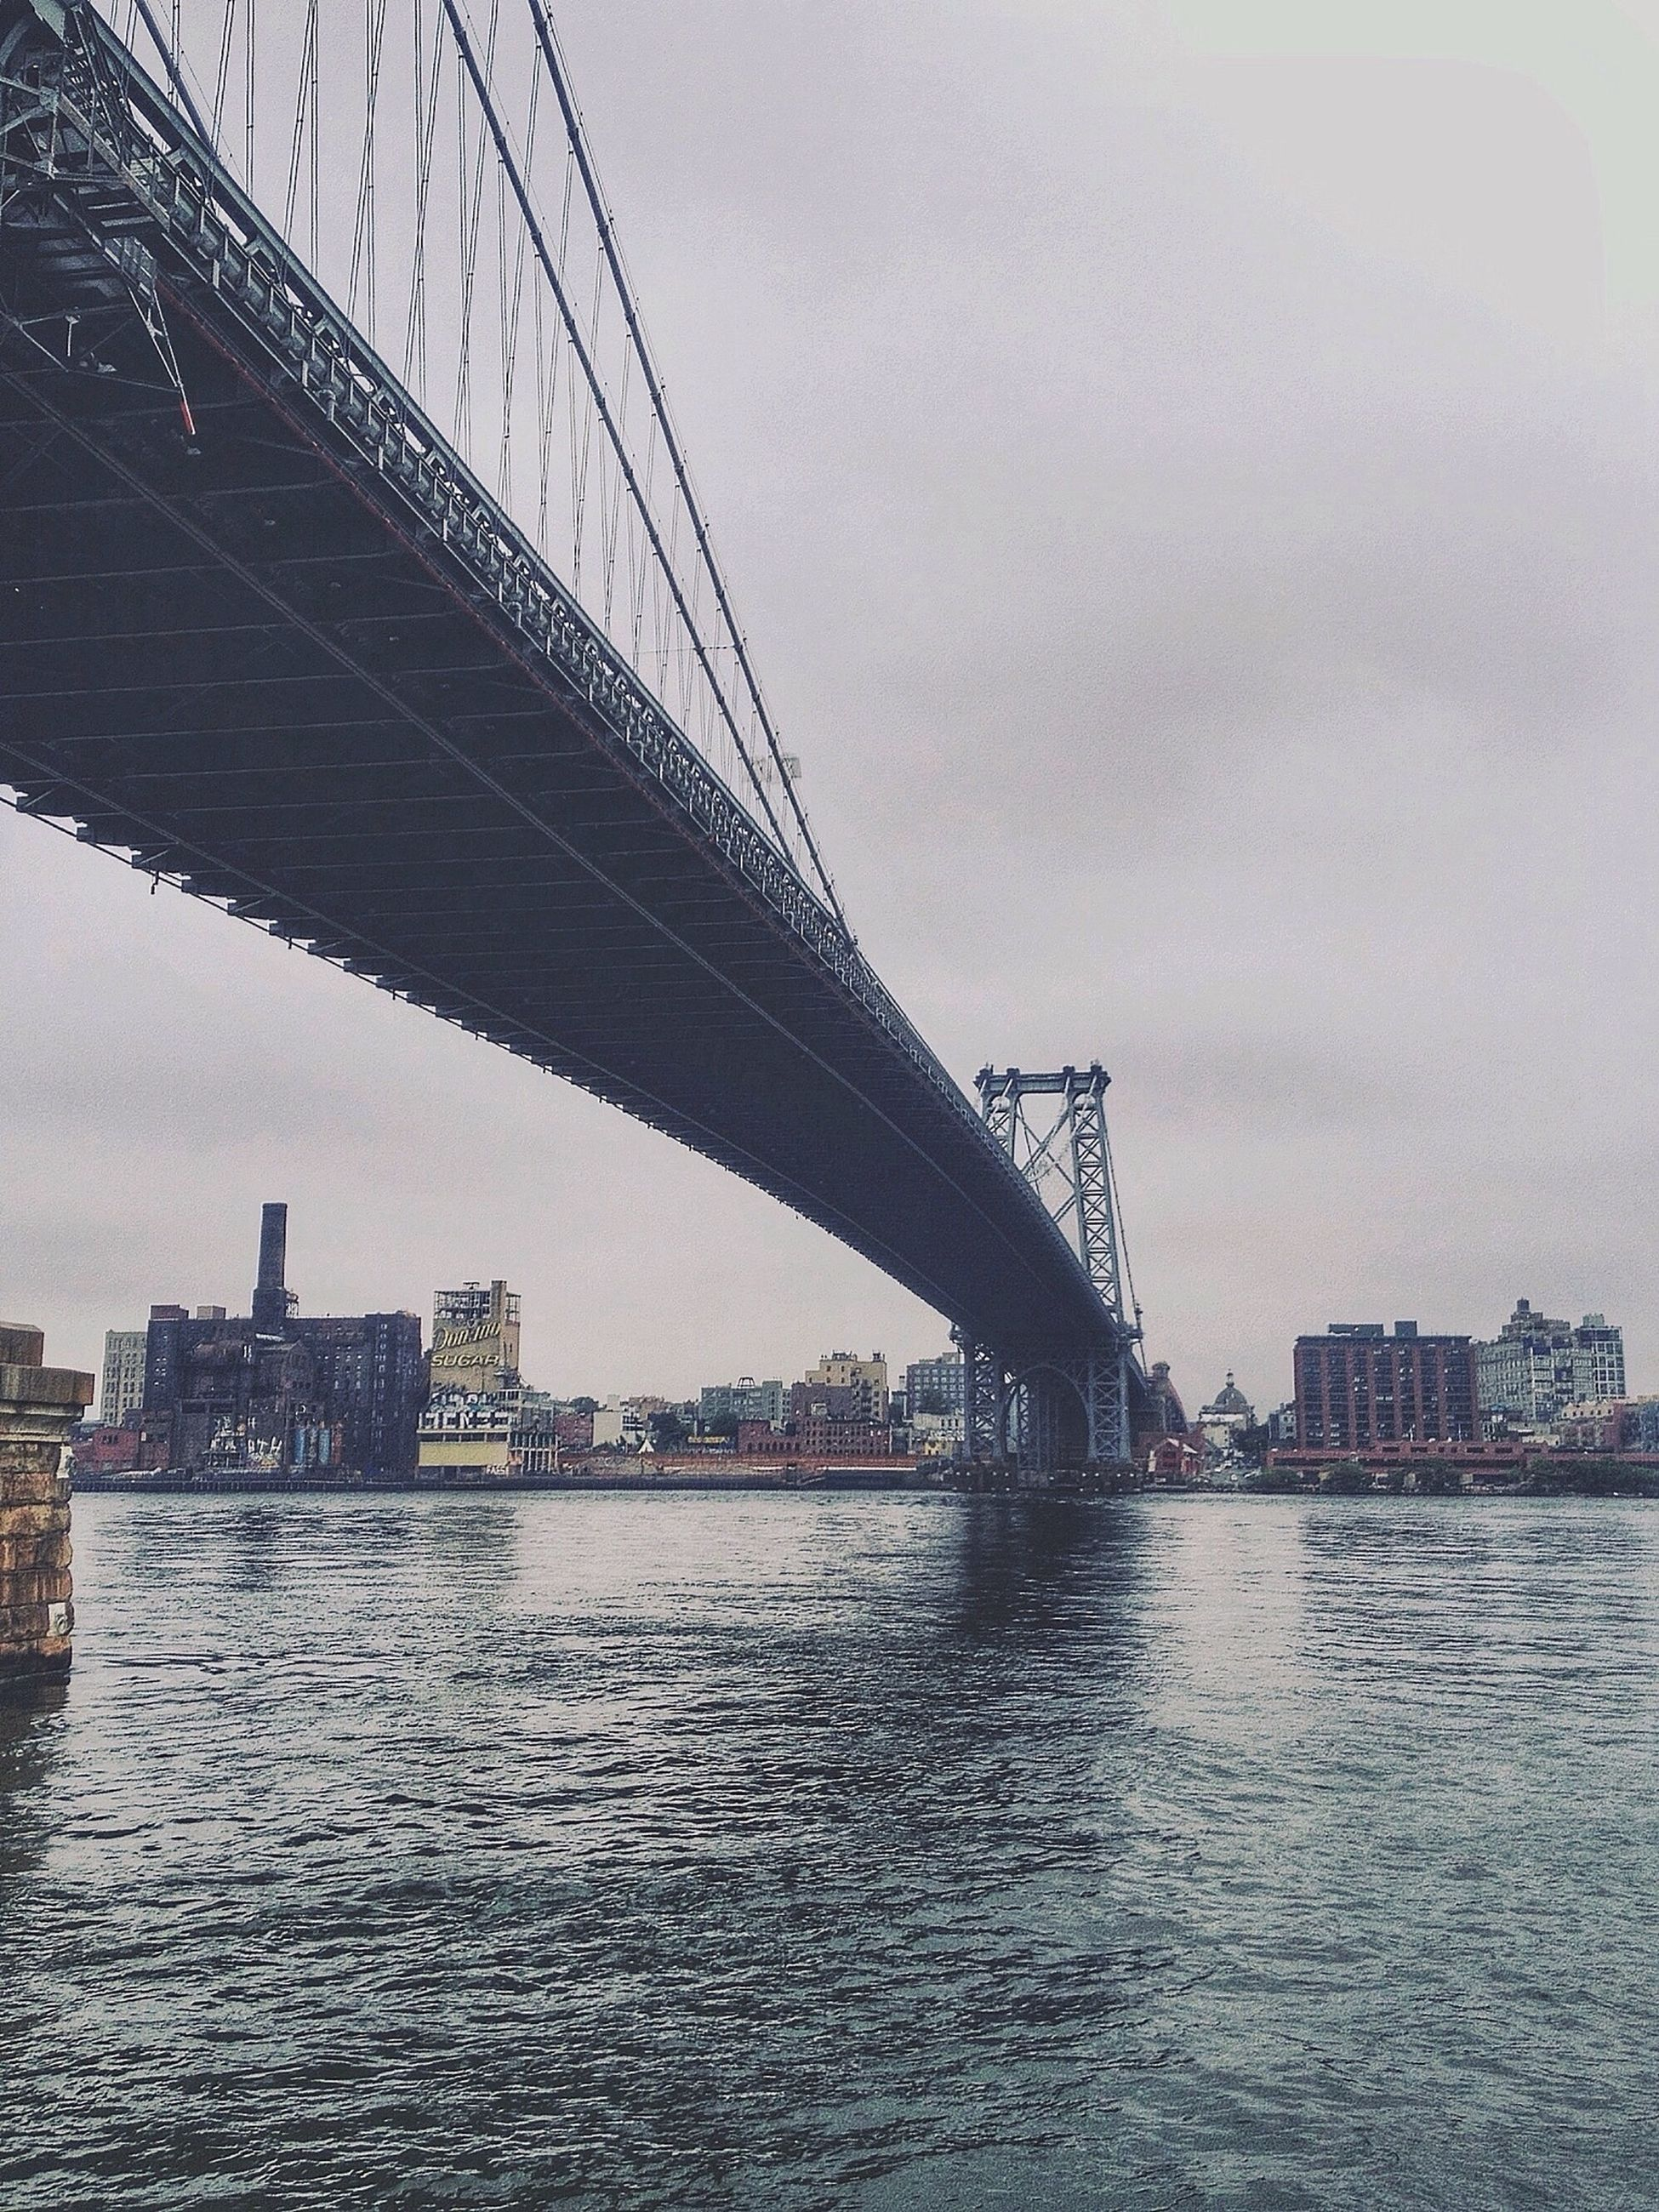 architecture, built structure, connection, bridge - man made structure, water, sky, river, waterfront, engineering, suspension bridge, city, bridge, transportation, building exterior, sea, low angle view, cloud - sky, outdoors, rippled, travel destinations